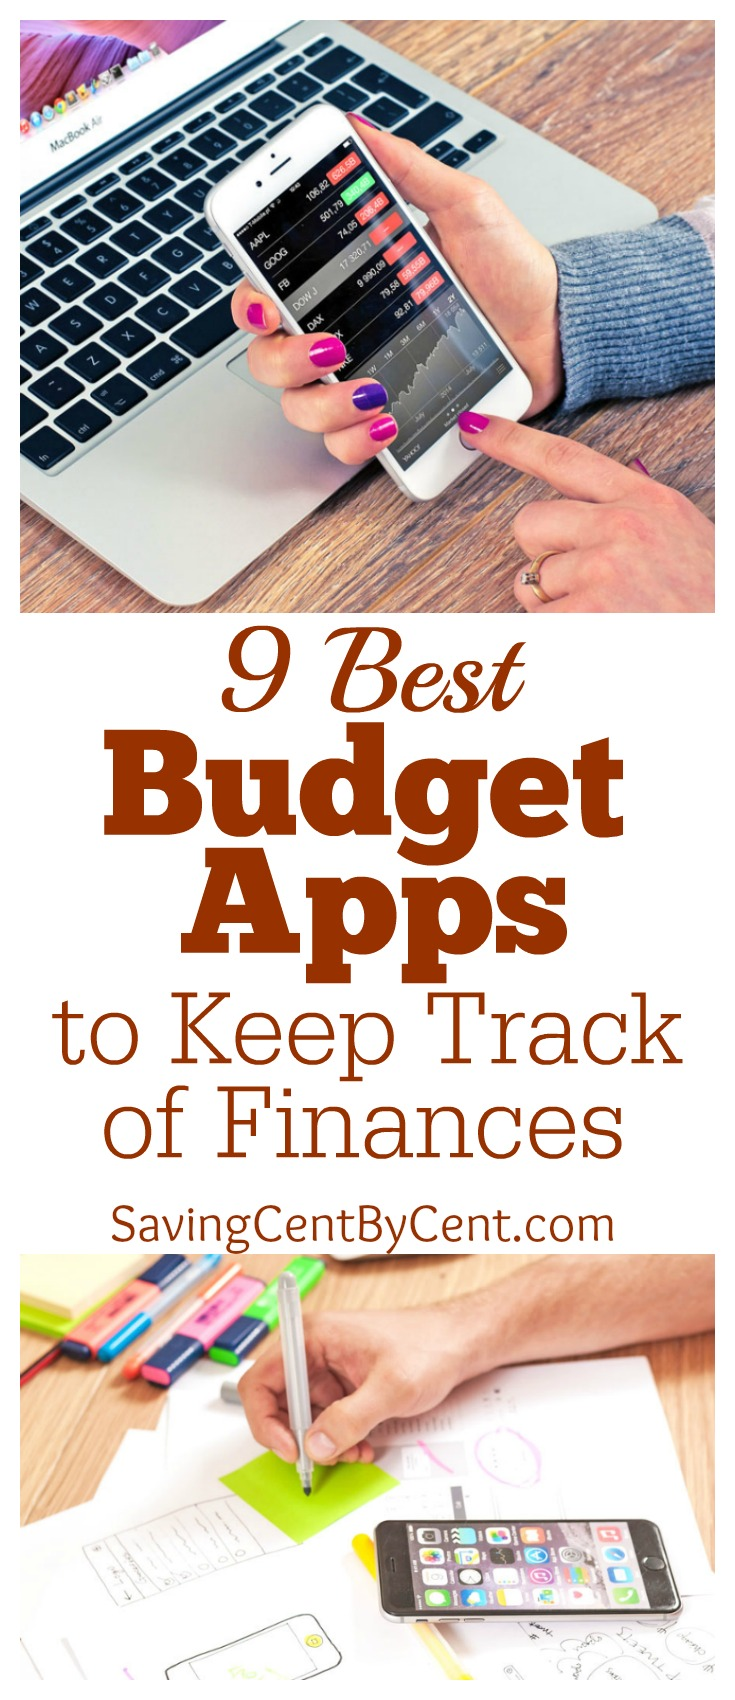 9 Best Budget Apps to Keep Track of Finances